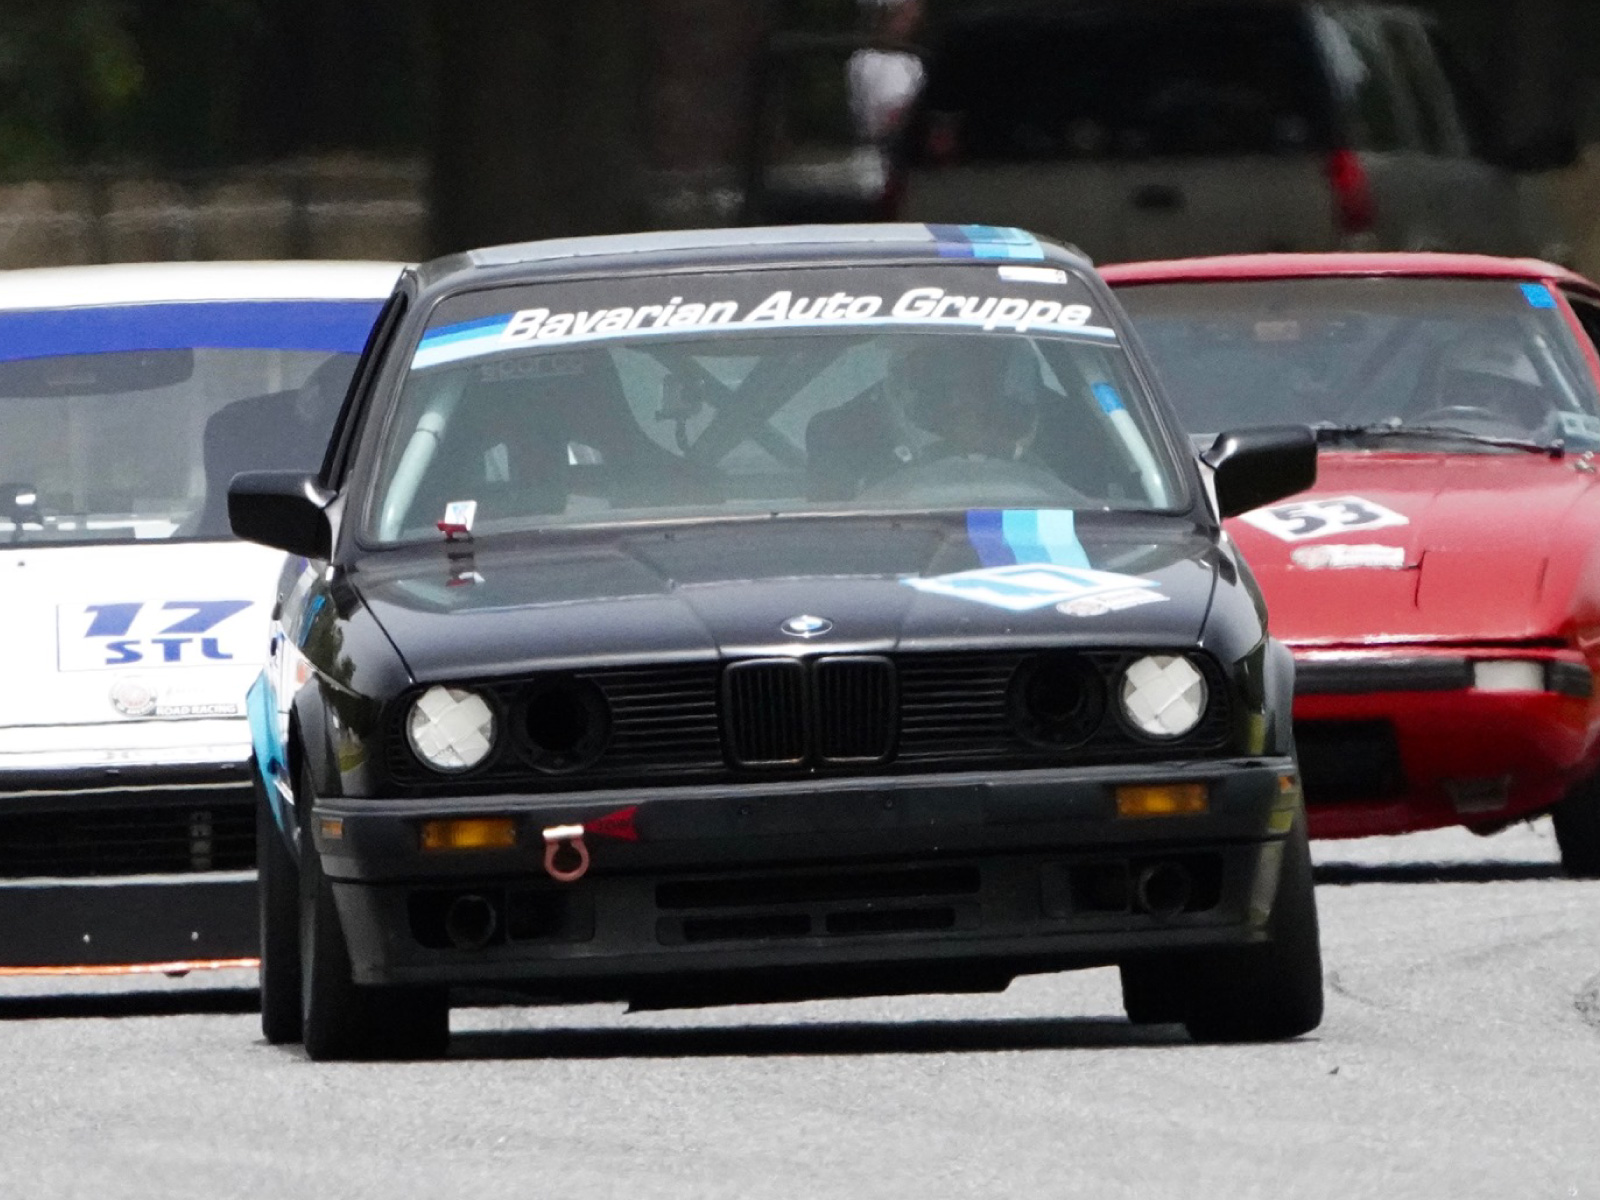 Road Racing with the Buccaneer Region of the SCCA